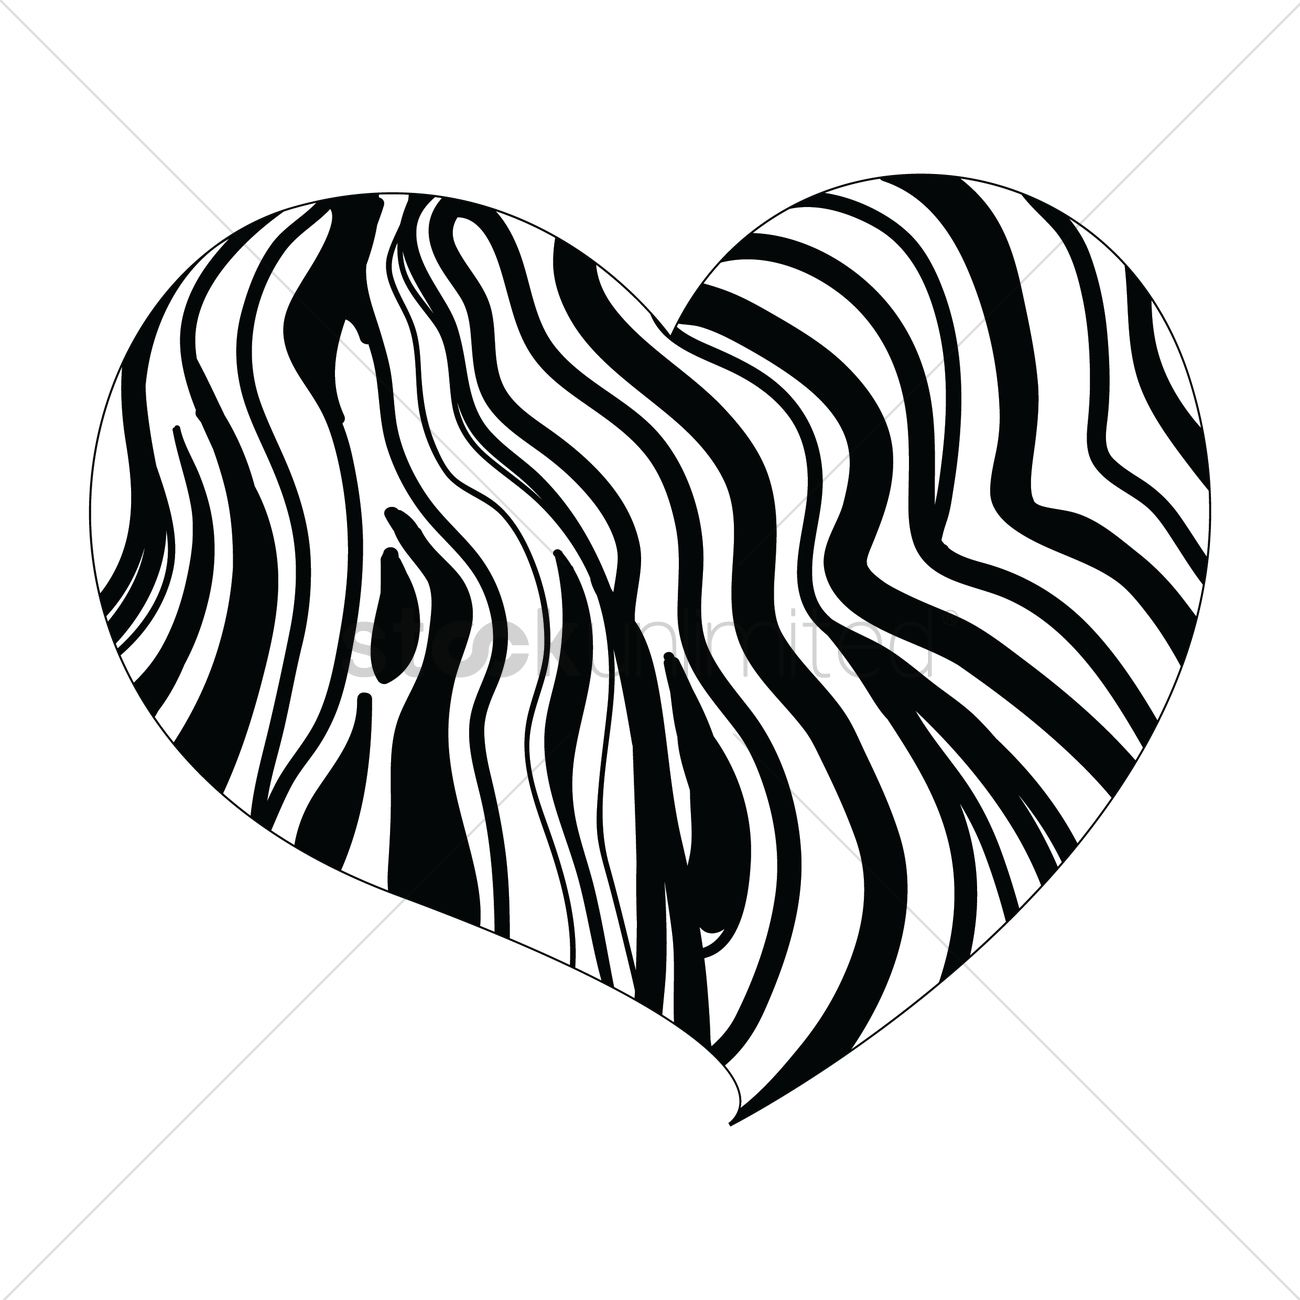 Heart Design With Zebra Print Vector Image